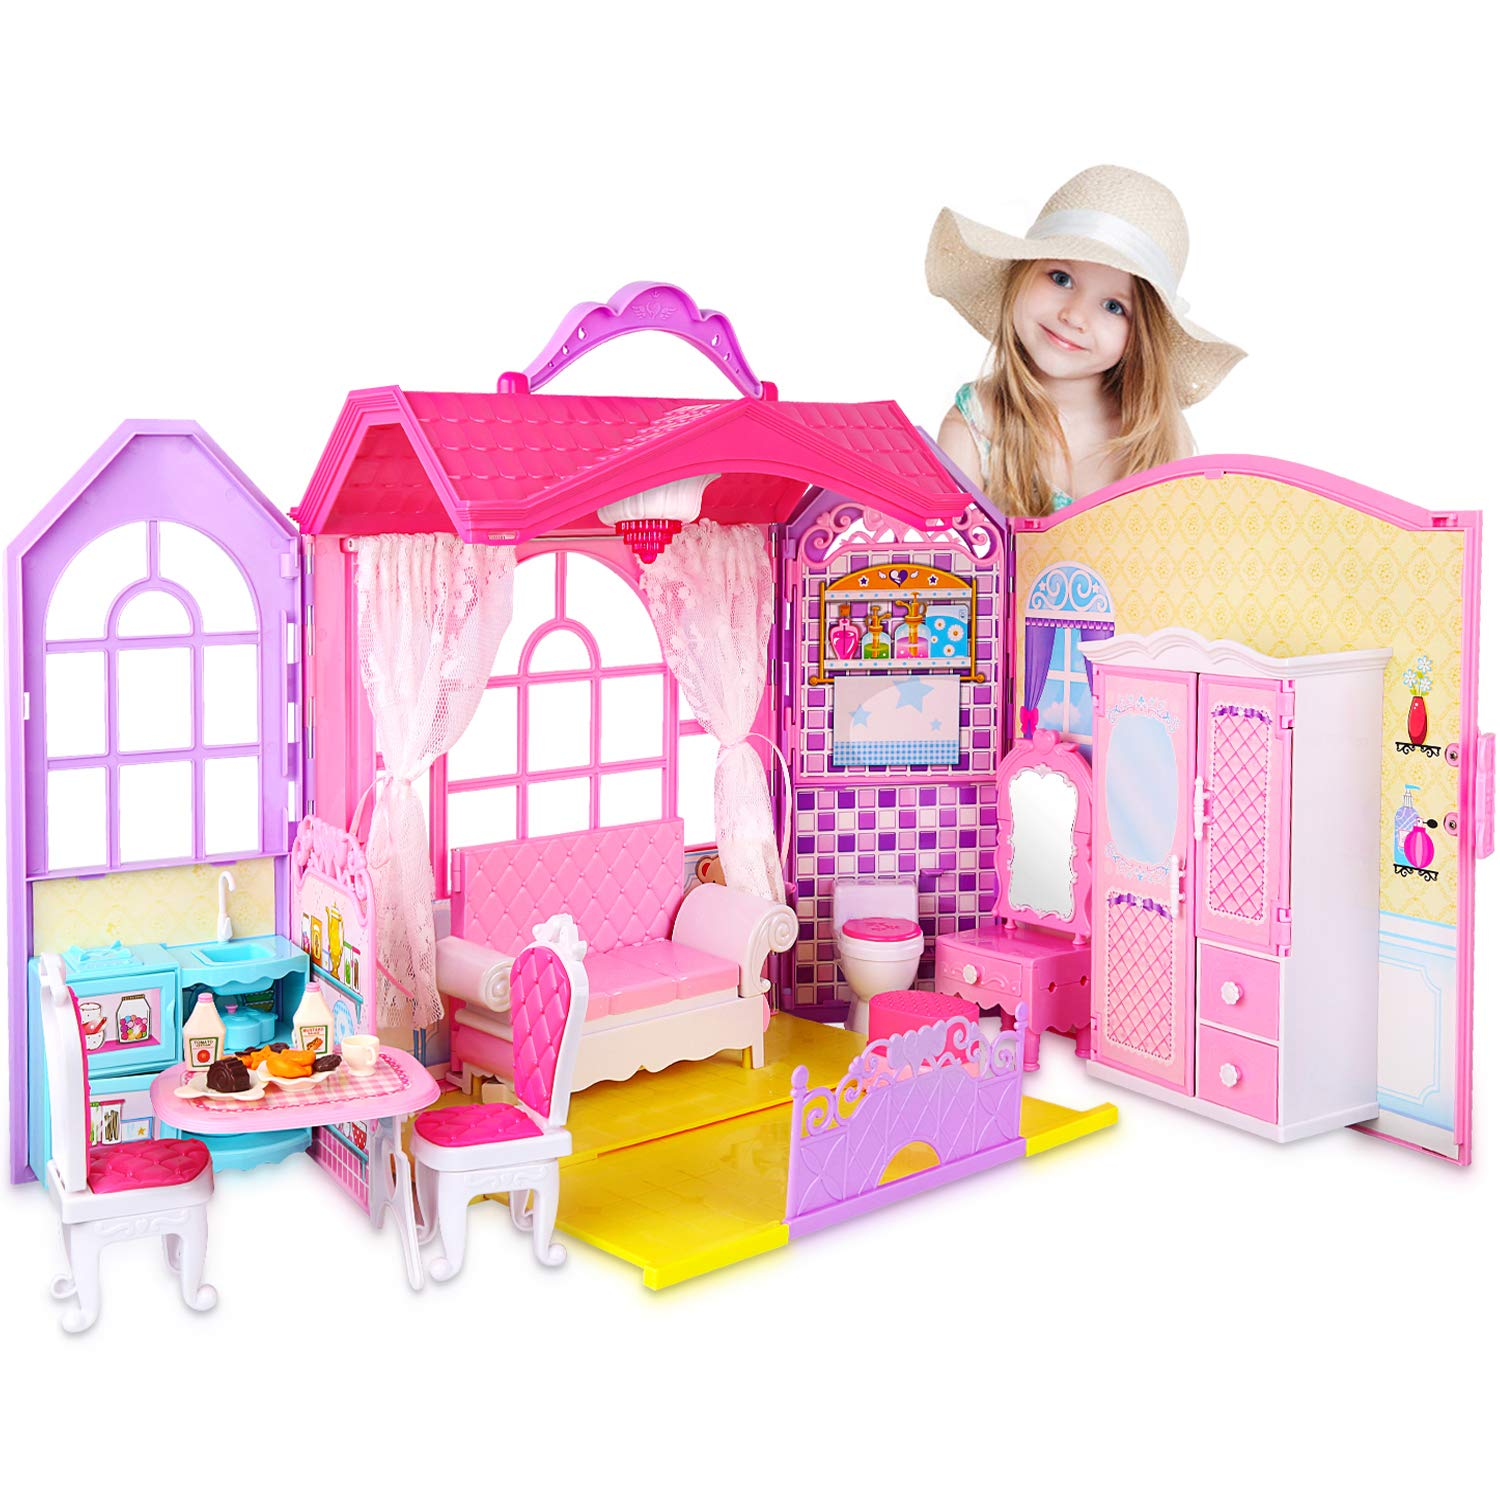 Super Joy Doll House Folding Dollhouse with Furniture, Including 70+ Accessories to Create up to 8 Scenes, Portable Doll